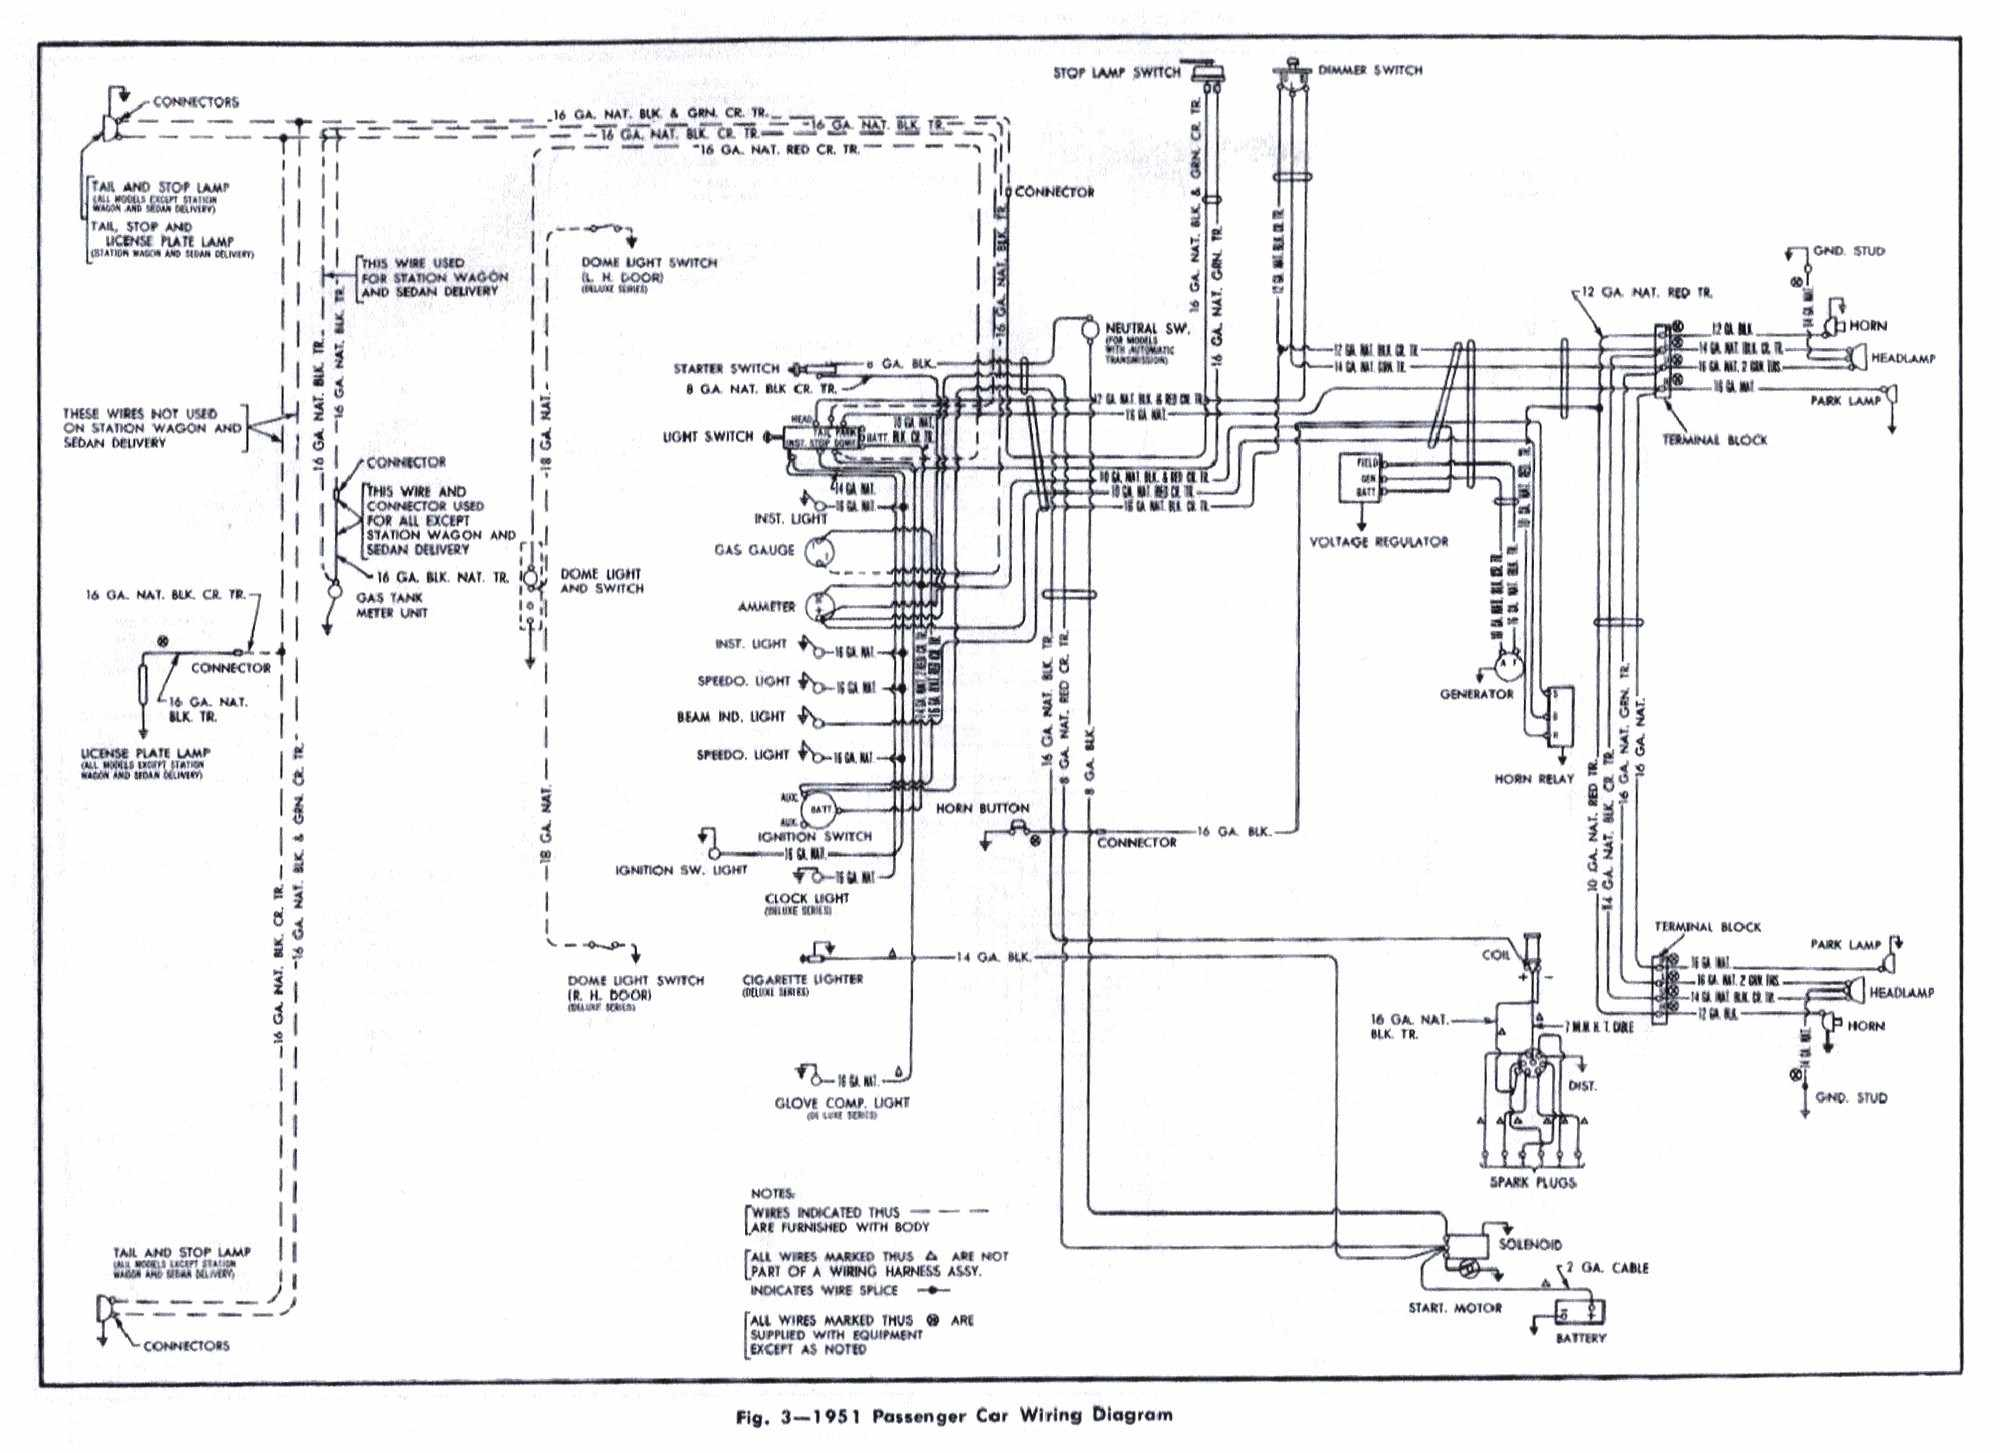 cool toyota alarm installation wiring diagrams ideas the best diagram of a giant clock beautiful toyota [ 2000 x 1453 Pixel ]